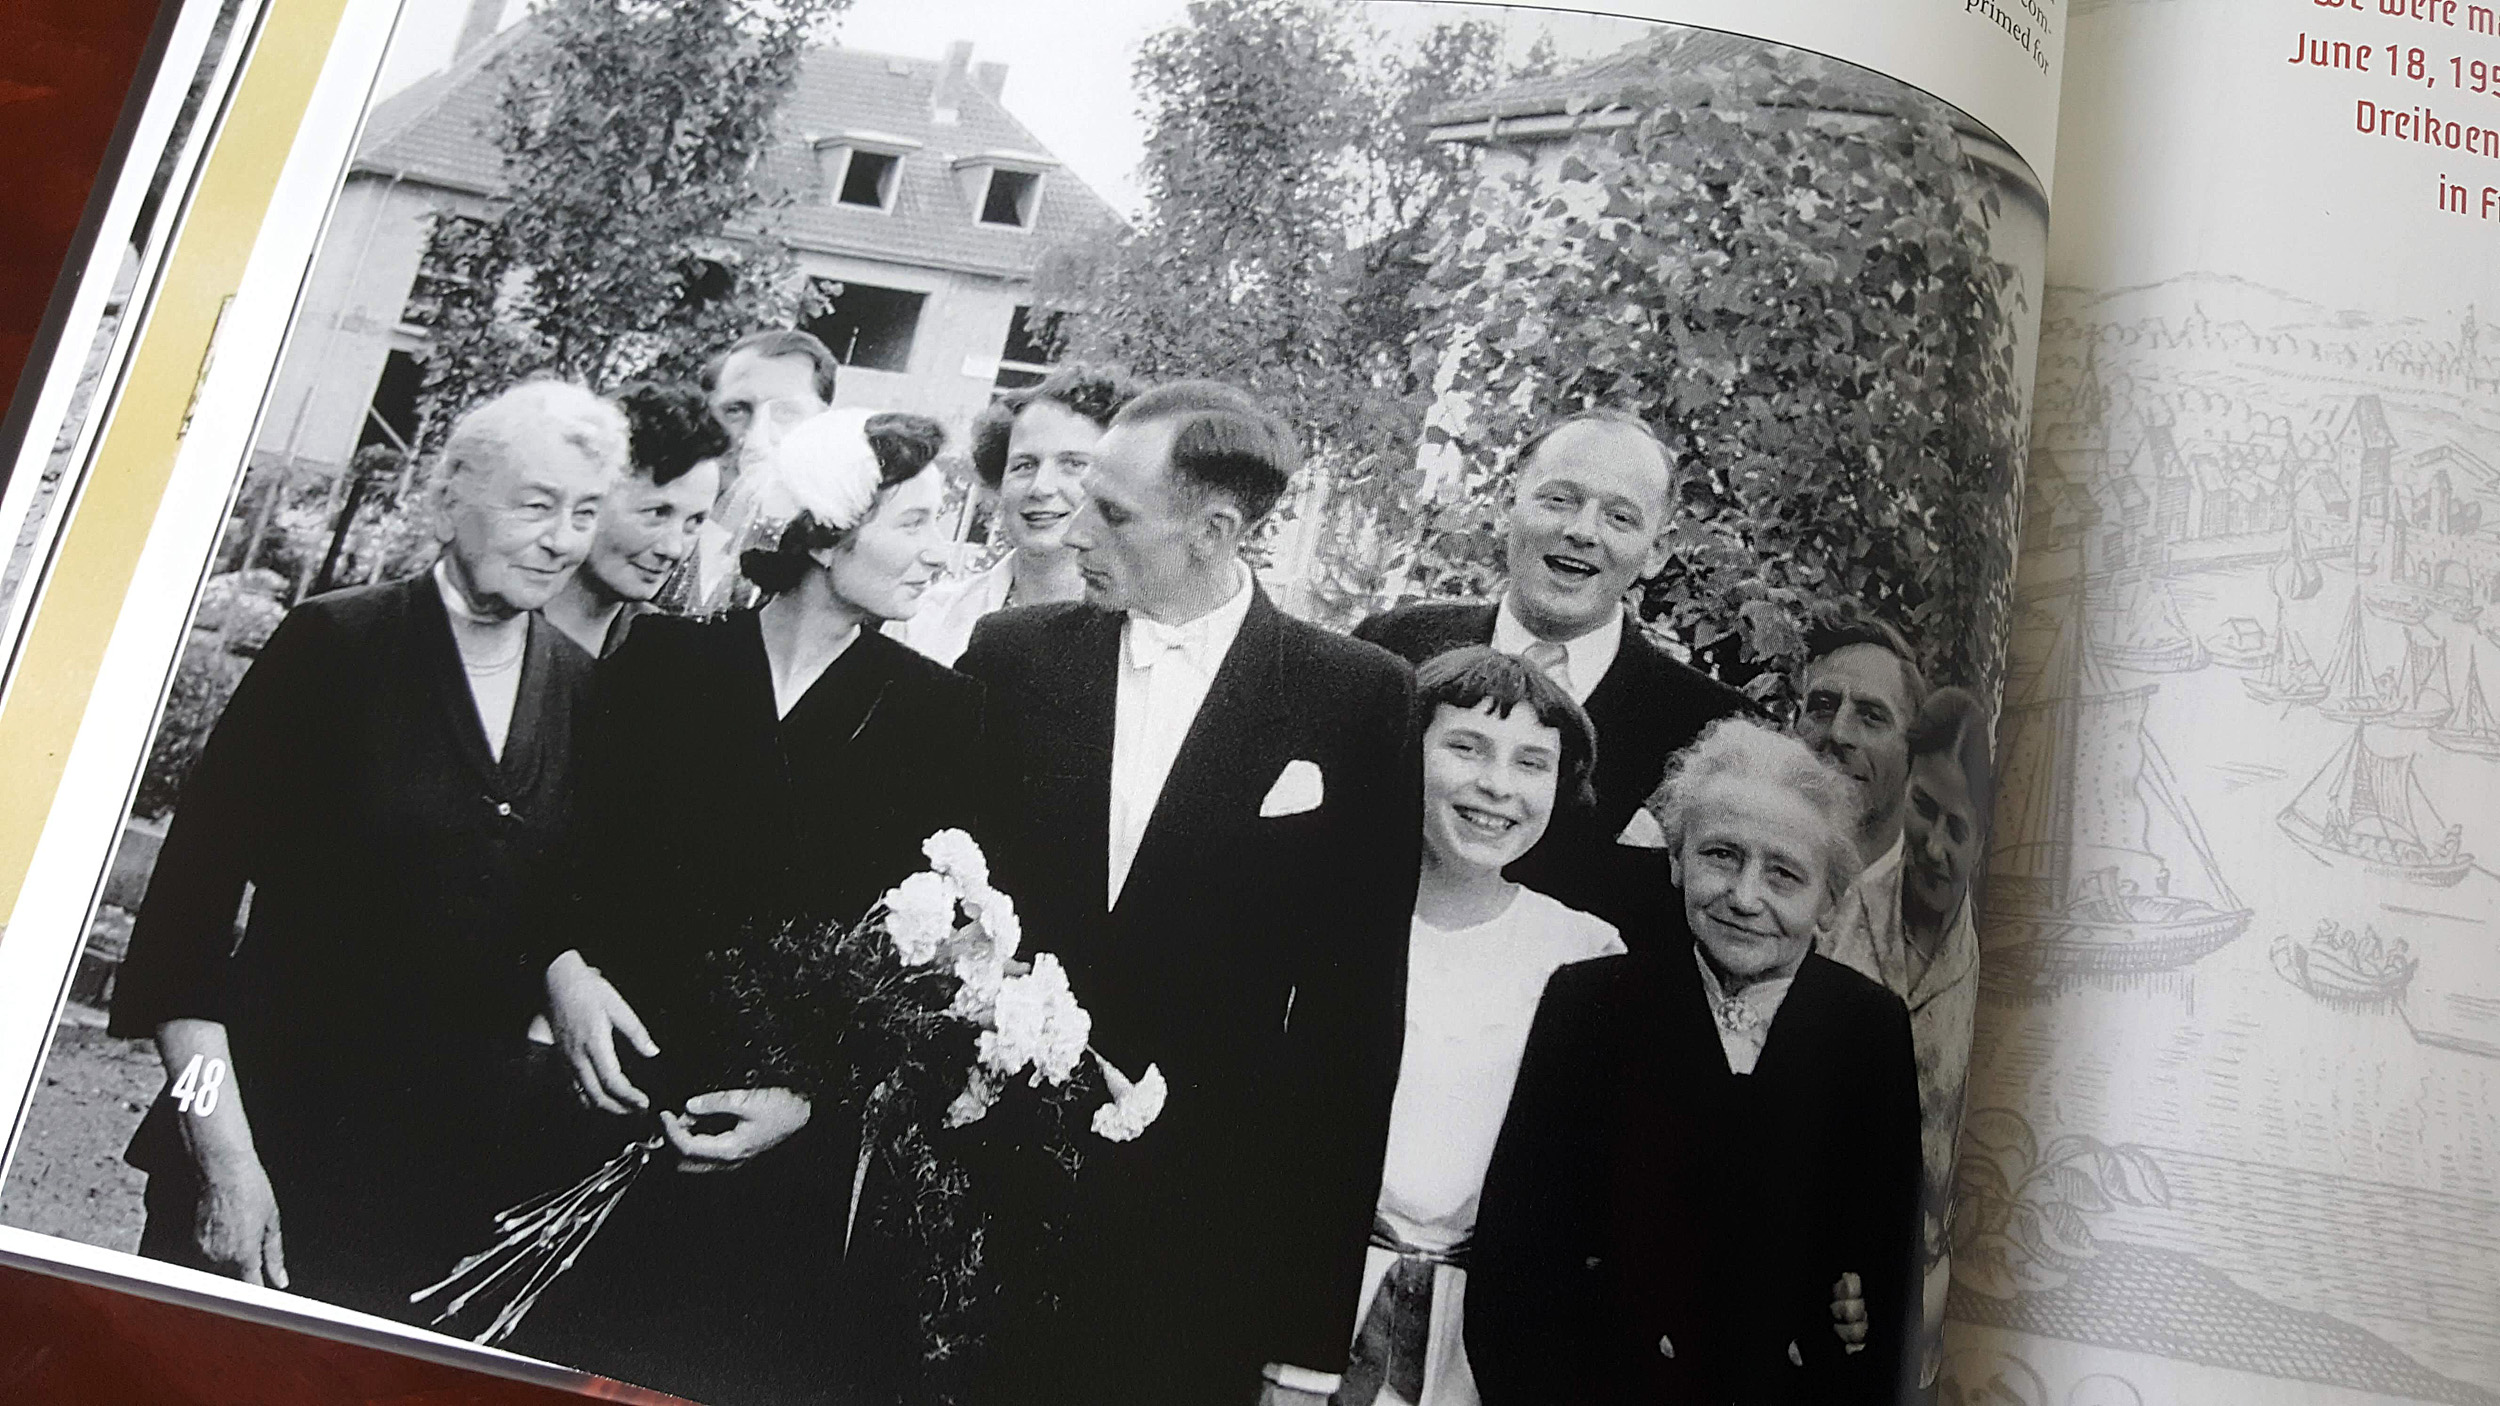 One of the most romantic wedding photos I've ever seen. Each family member shows their joy with a different expression. Eveline looks up adoringly at Fiti, and he looks as though he is just about to kiss her.